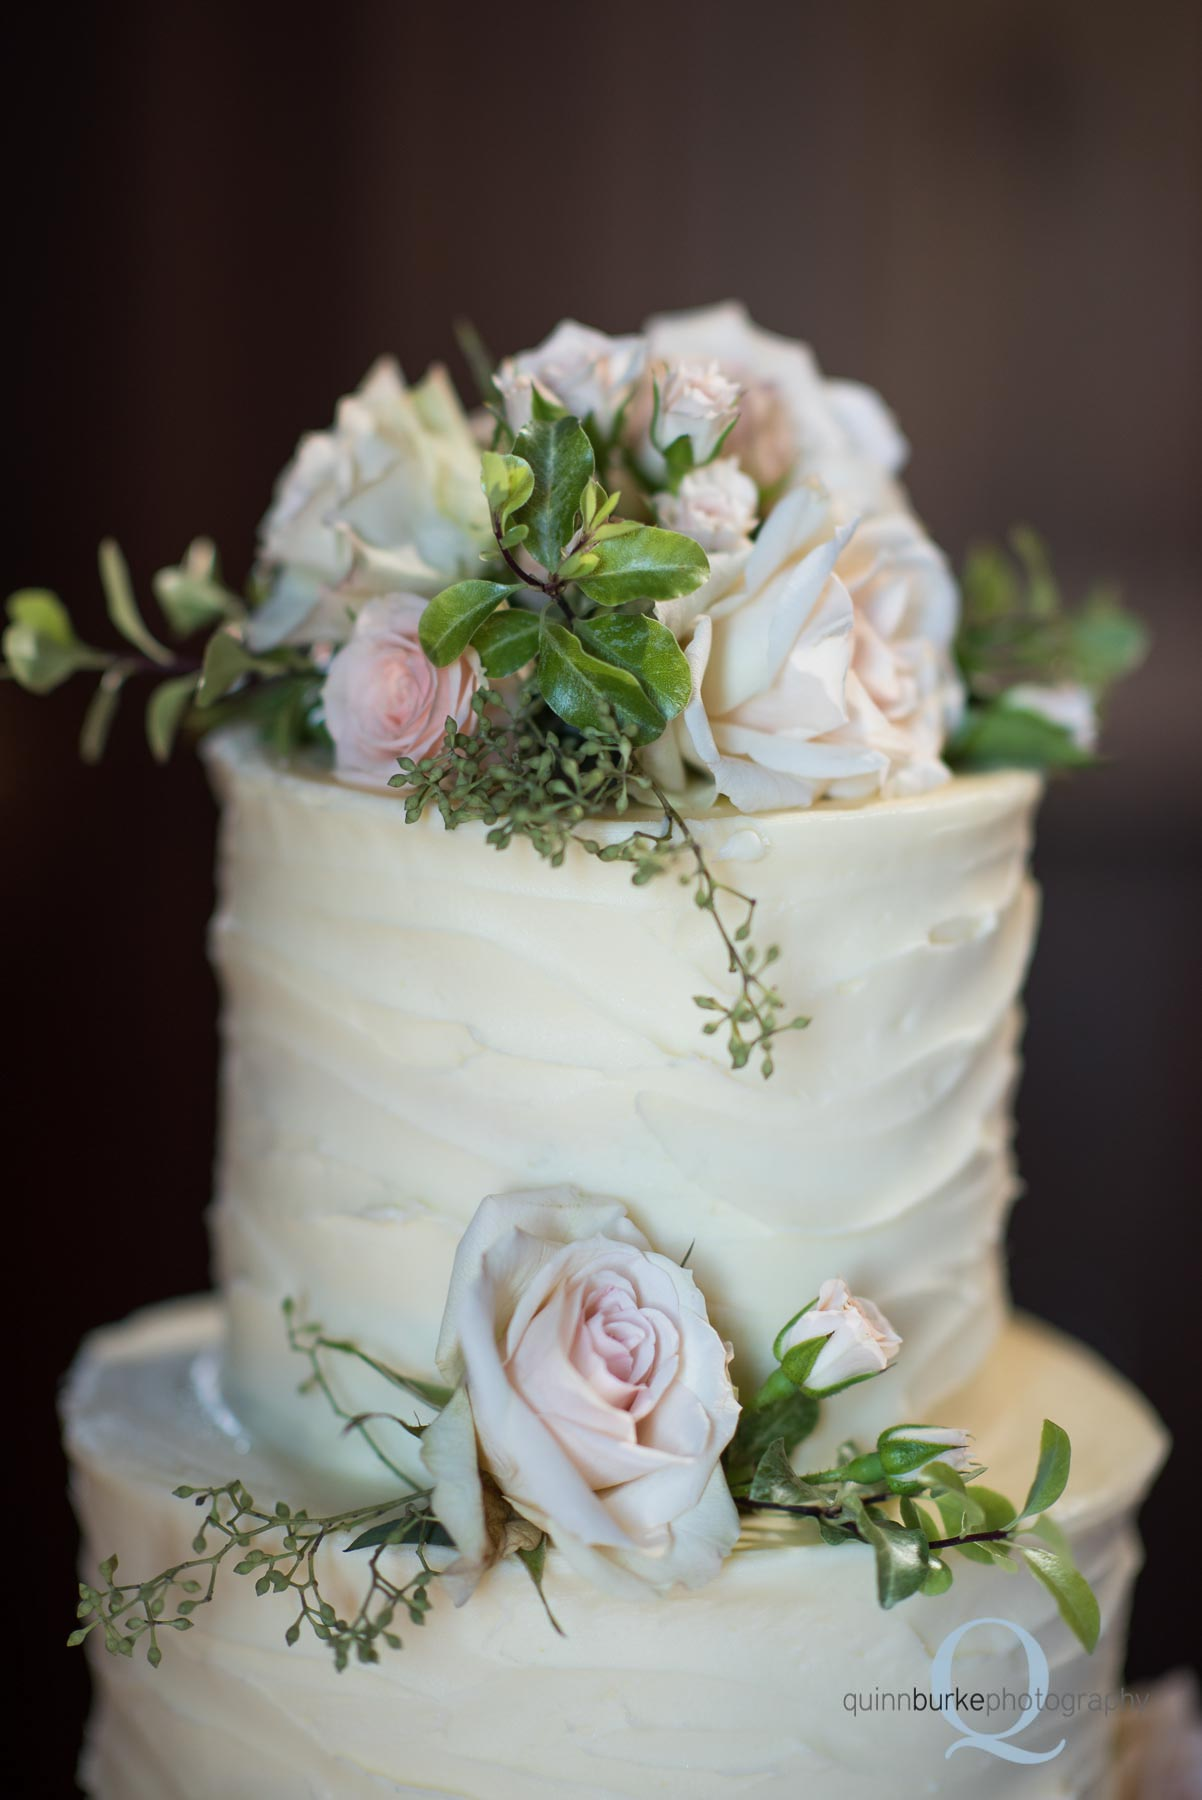 Perryhill Farm wedding cake roses